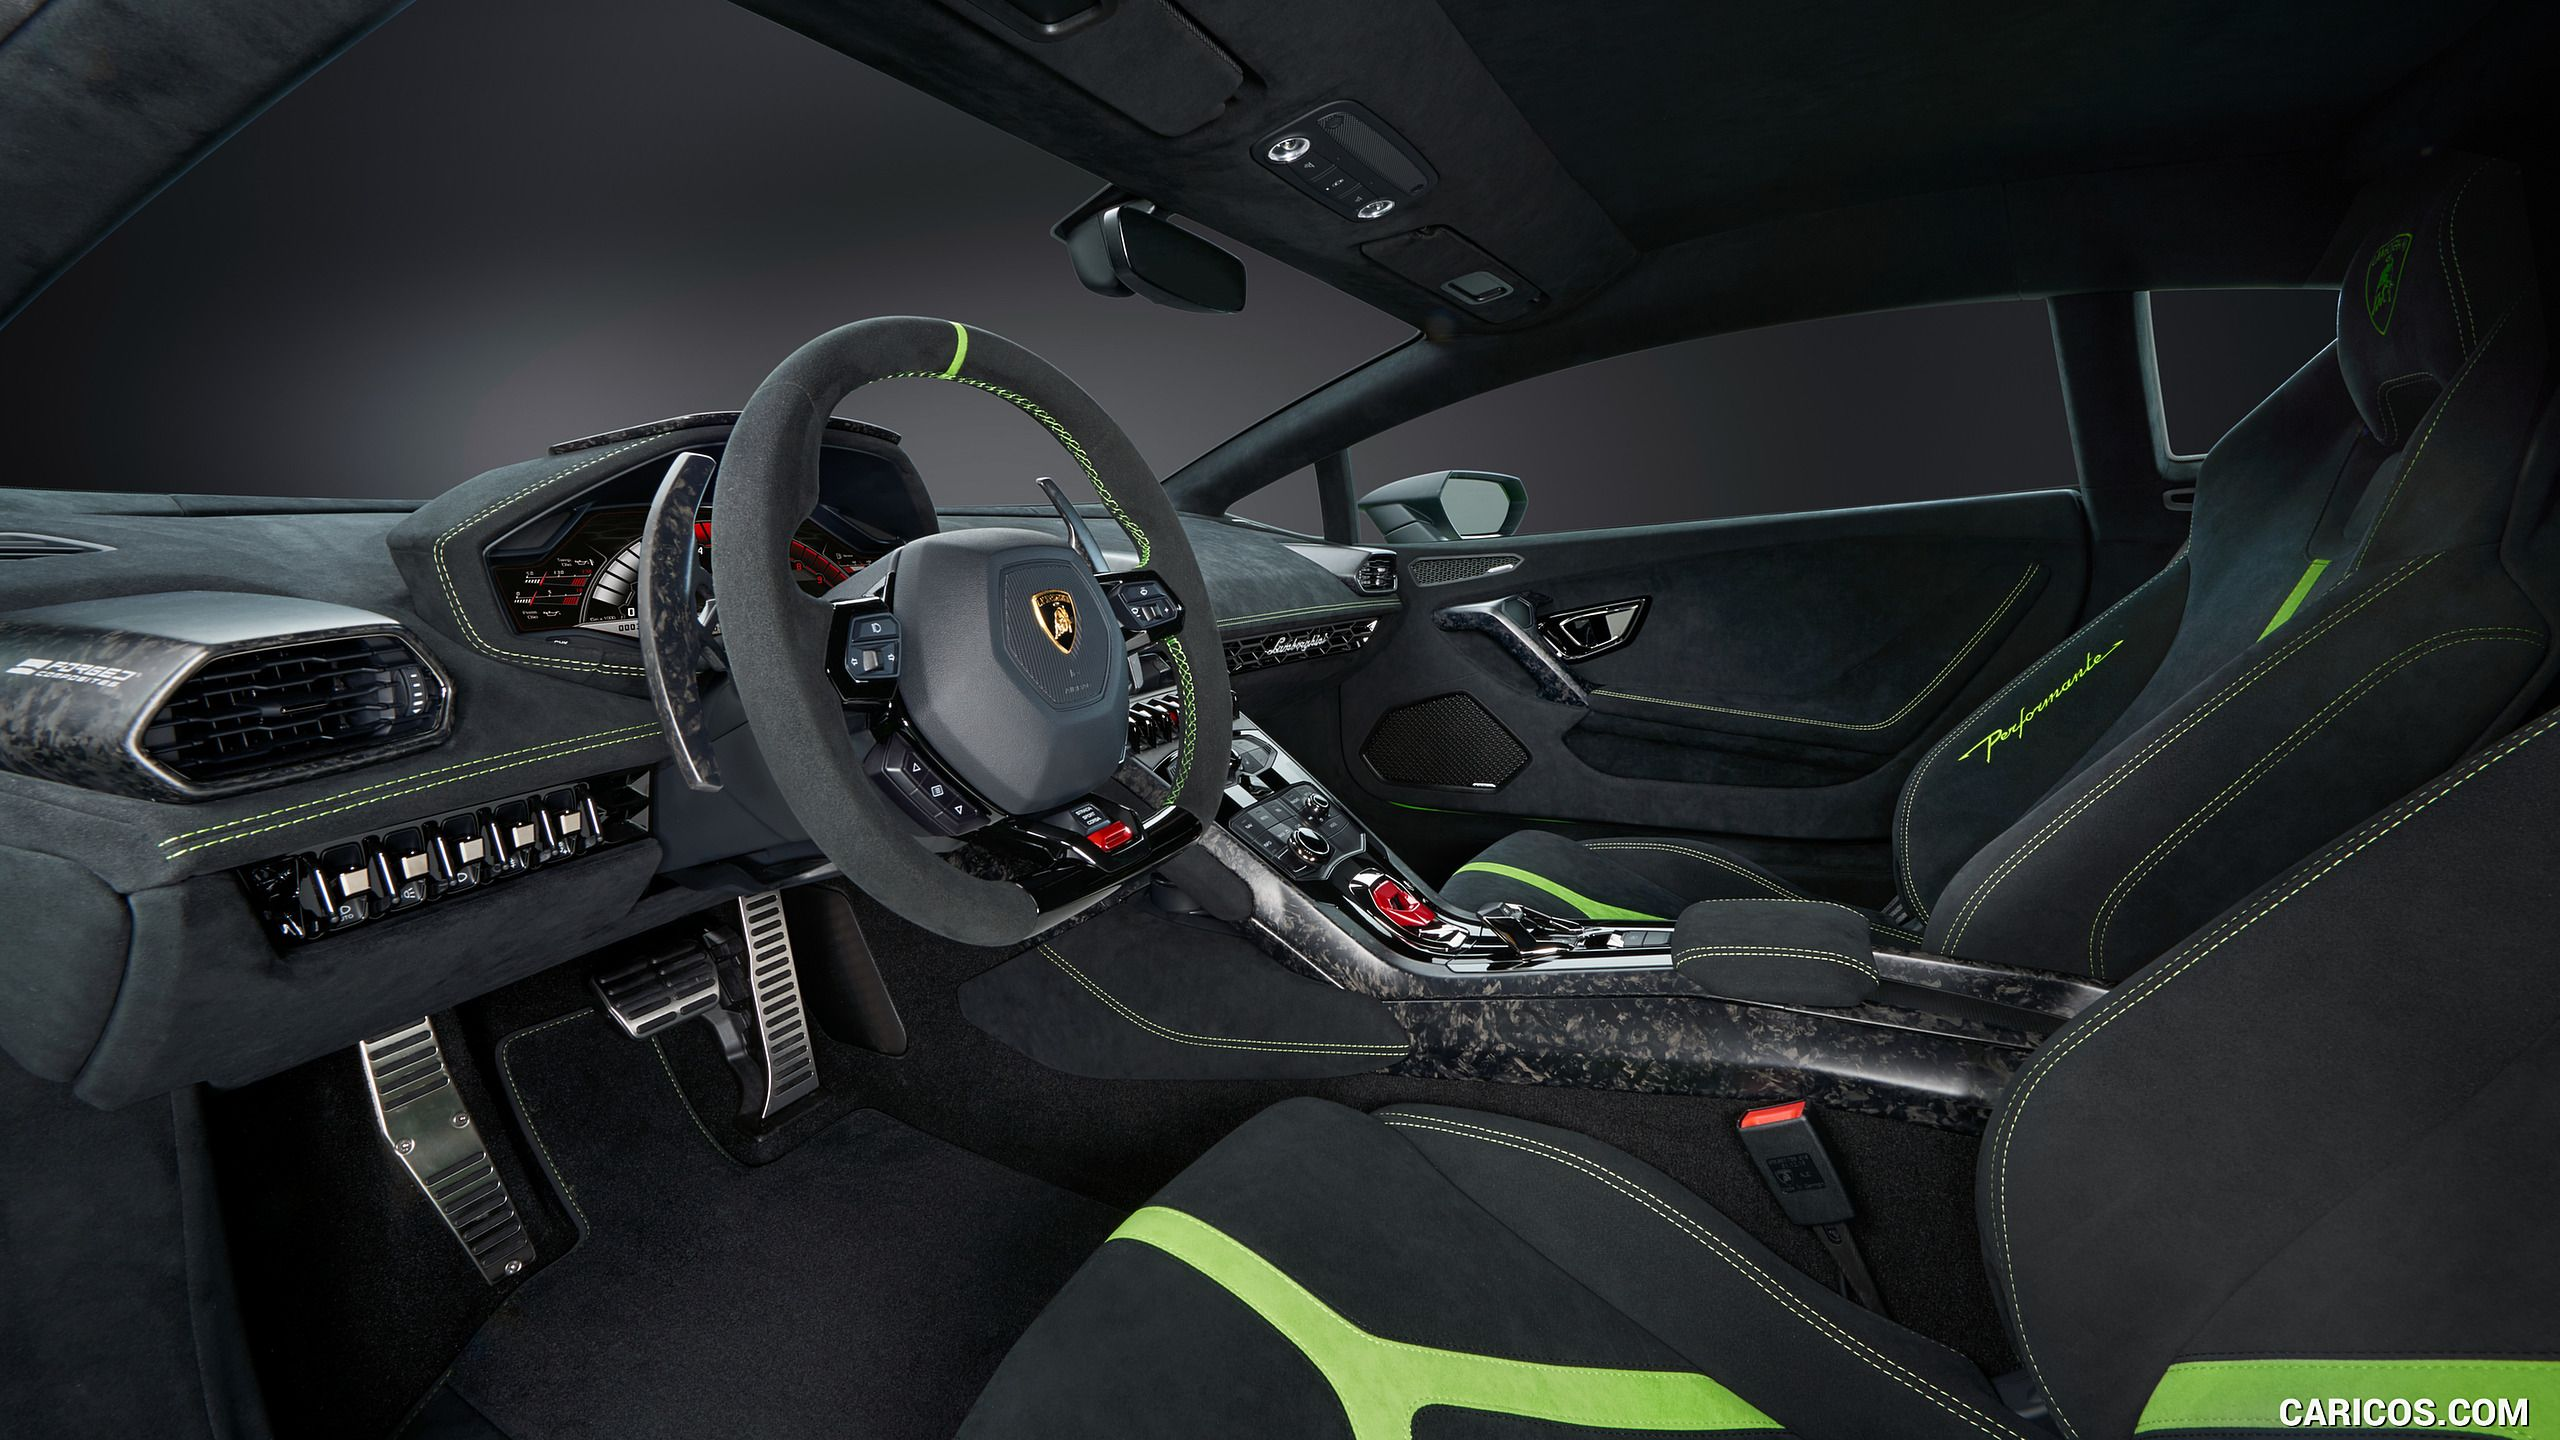 2018 Lamborghini Huracan Performante Wallpaper Gtr Customization